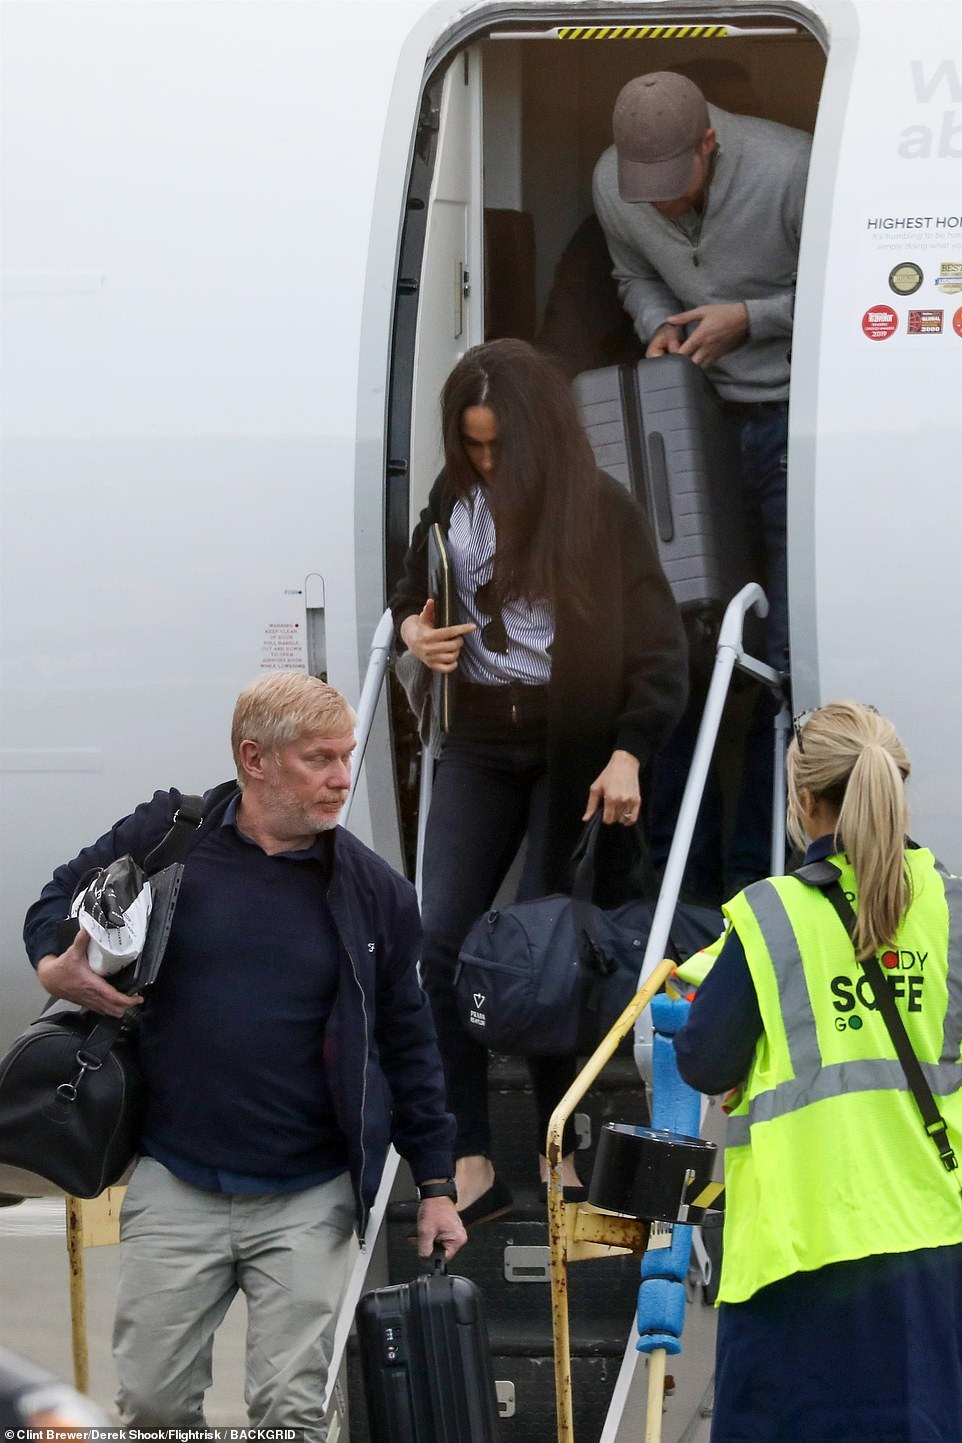 Meghan also opted for an eco-friendly outfit for the flight. The Duchess, who led the way out of the plane with her husband following closely behind, wore 5 black pumps from Rothy's, a San Francisco-based company that turns recycled water bottles into shoes and was carrying a ,790 duffle bag from Prada's Re-Nylon line, which uses the material Econyl